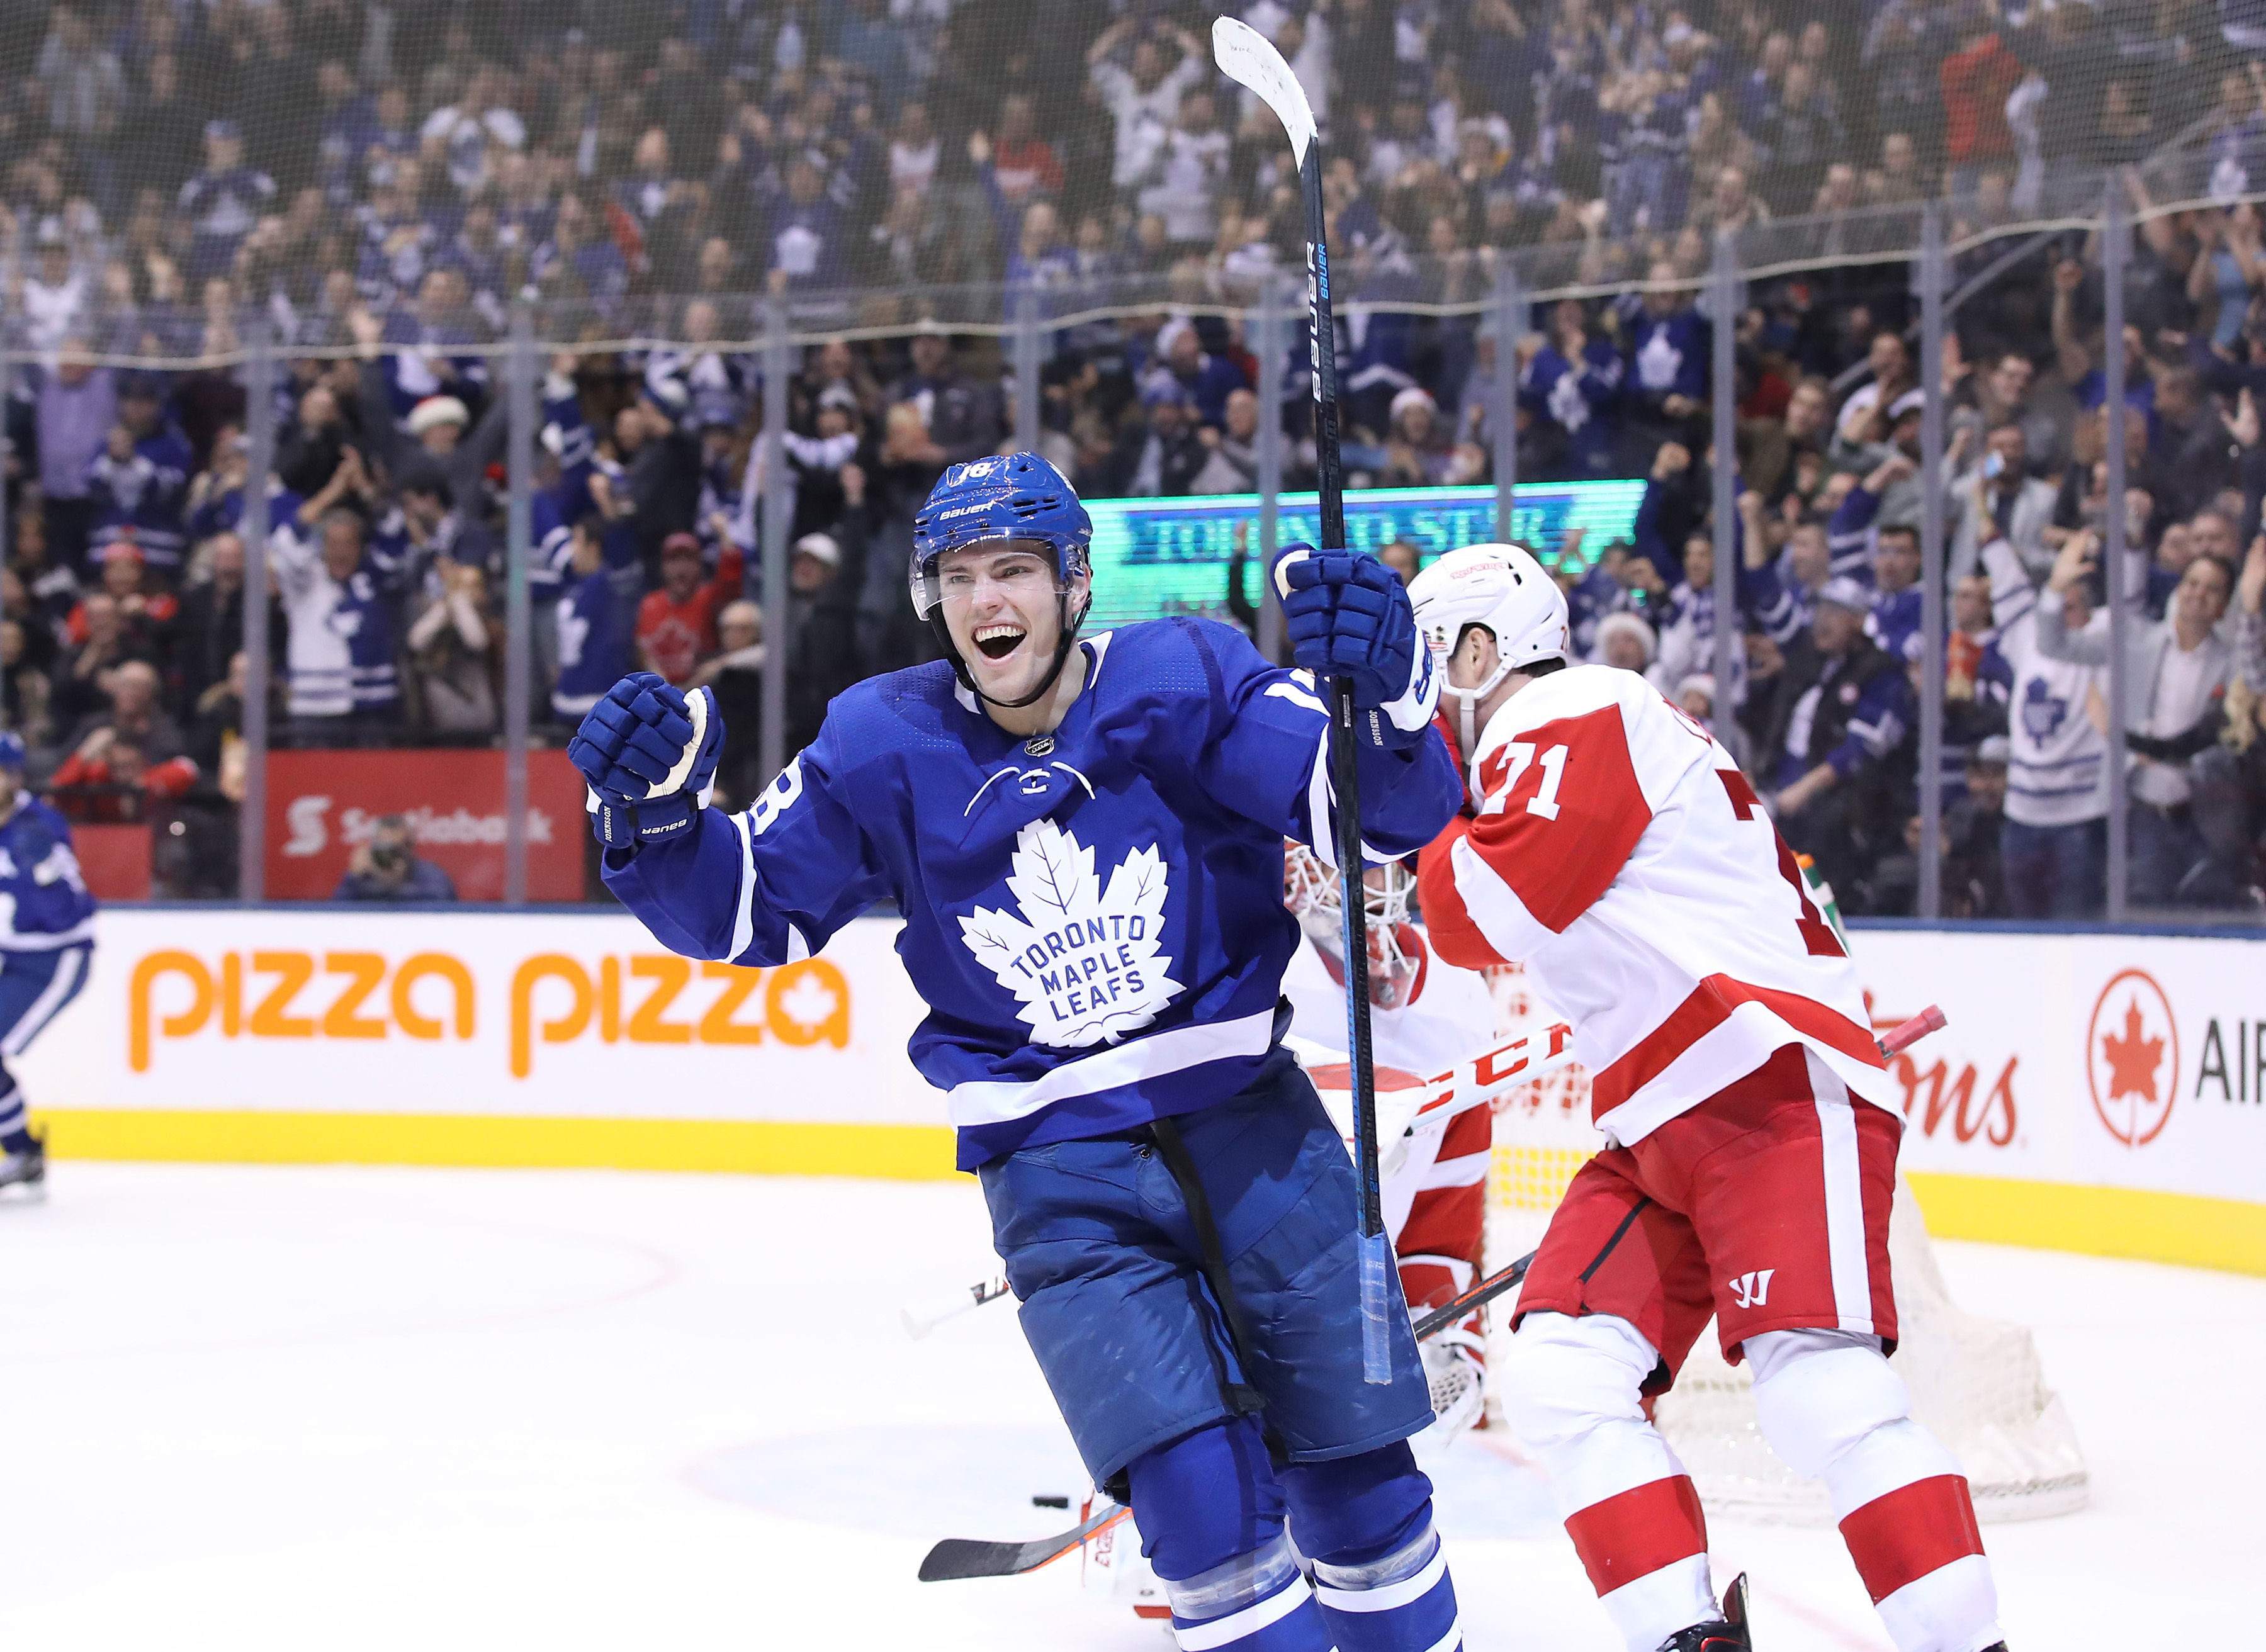 NHL: Detroit Red Wings at Toronto Maple Leafs